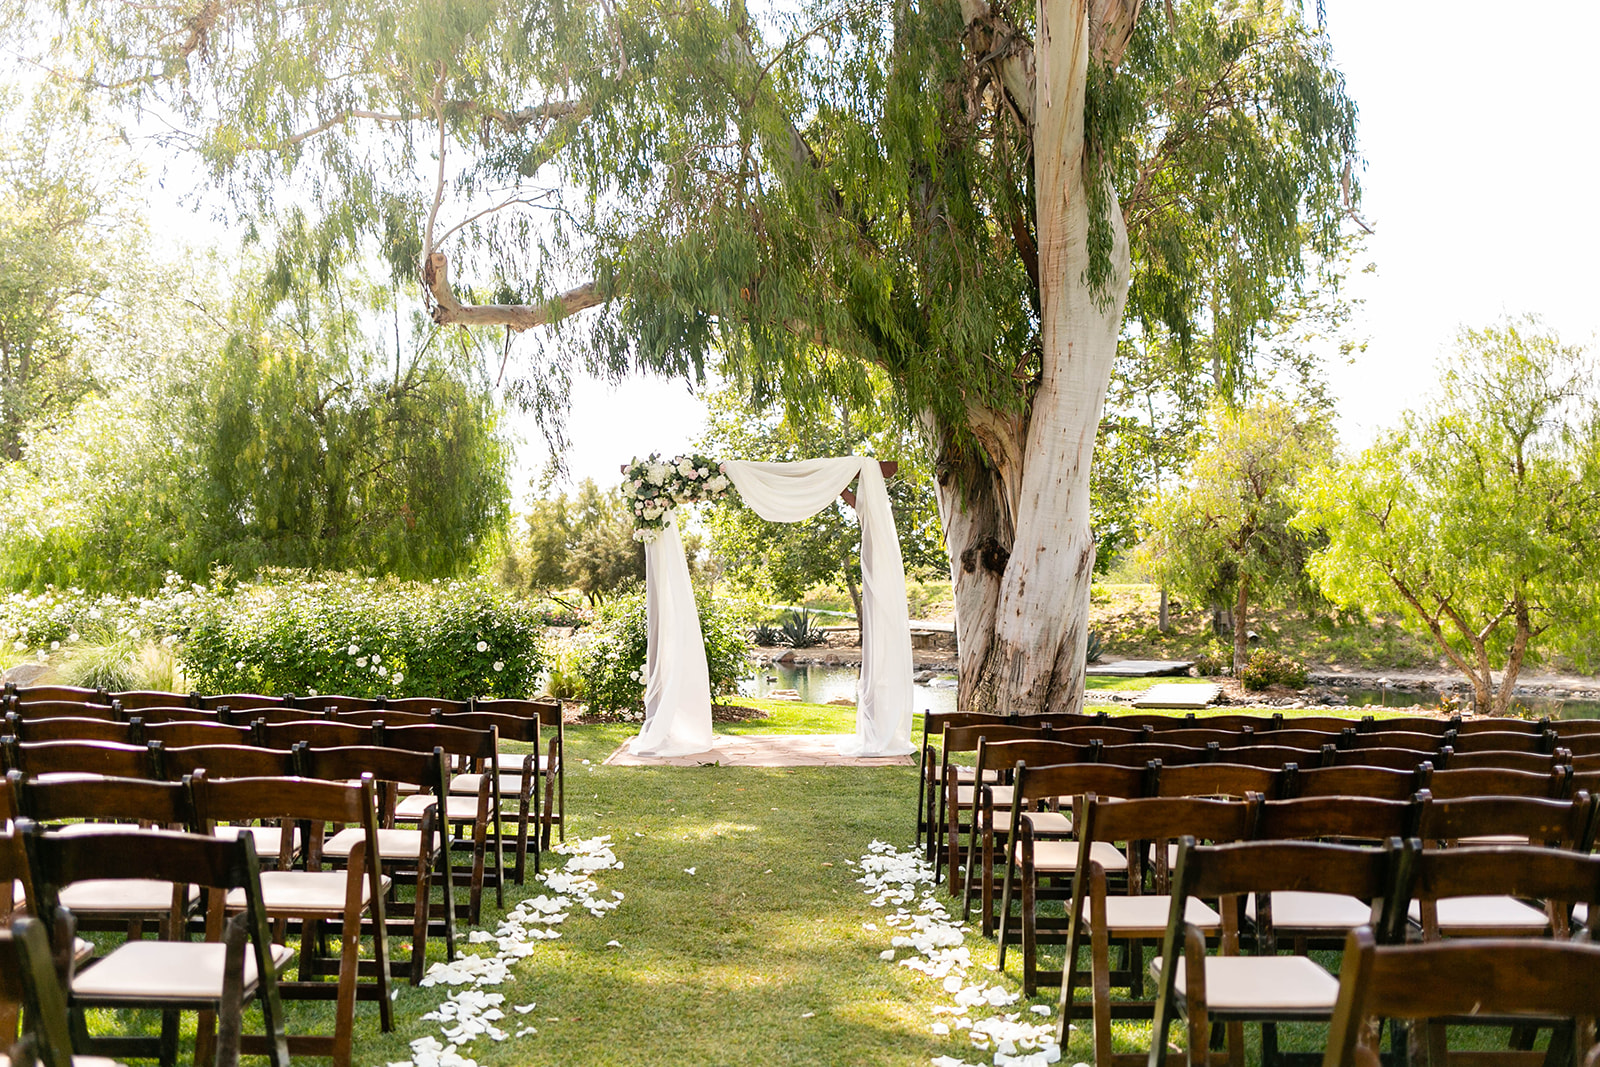 outdoor wedding ceremony setup at Galway Downs in Temecula, CA